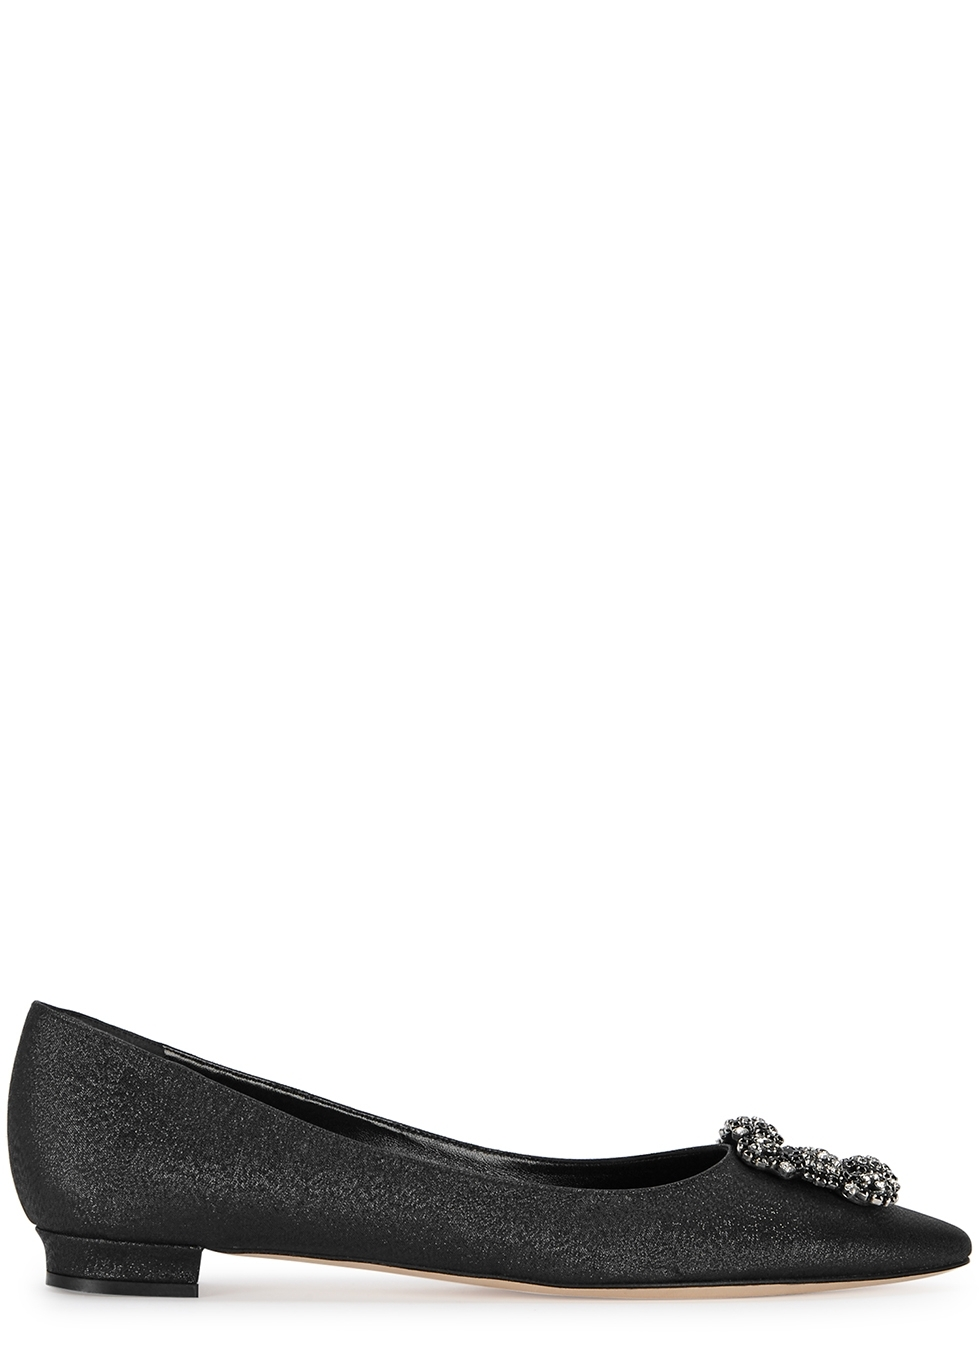 1ab93b34a951 Women s Designer Flats - Flat Shoes - Harvey Nichols